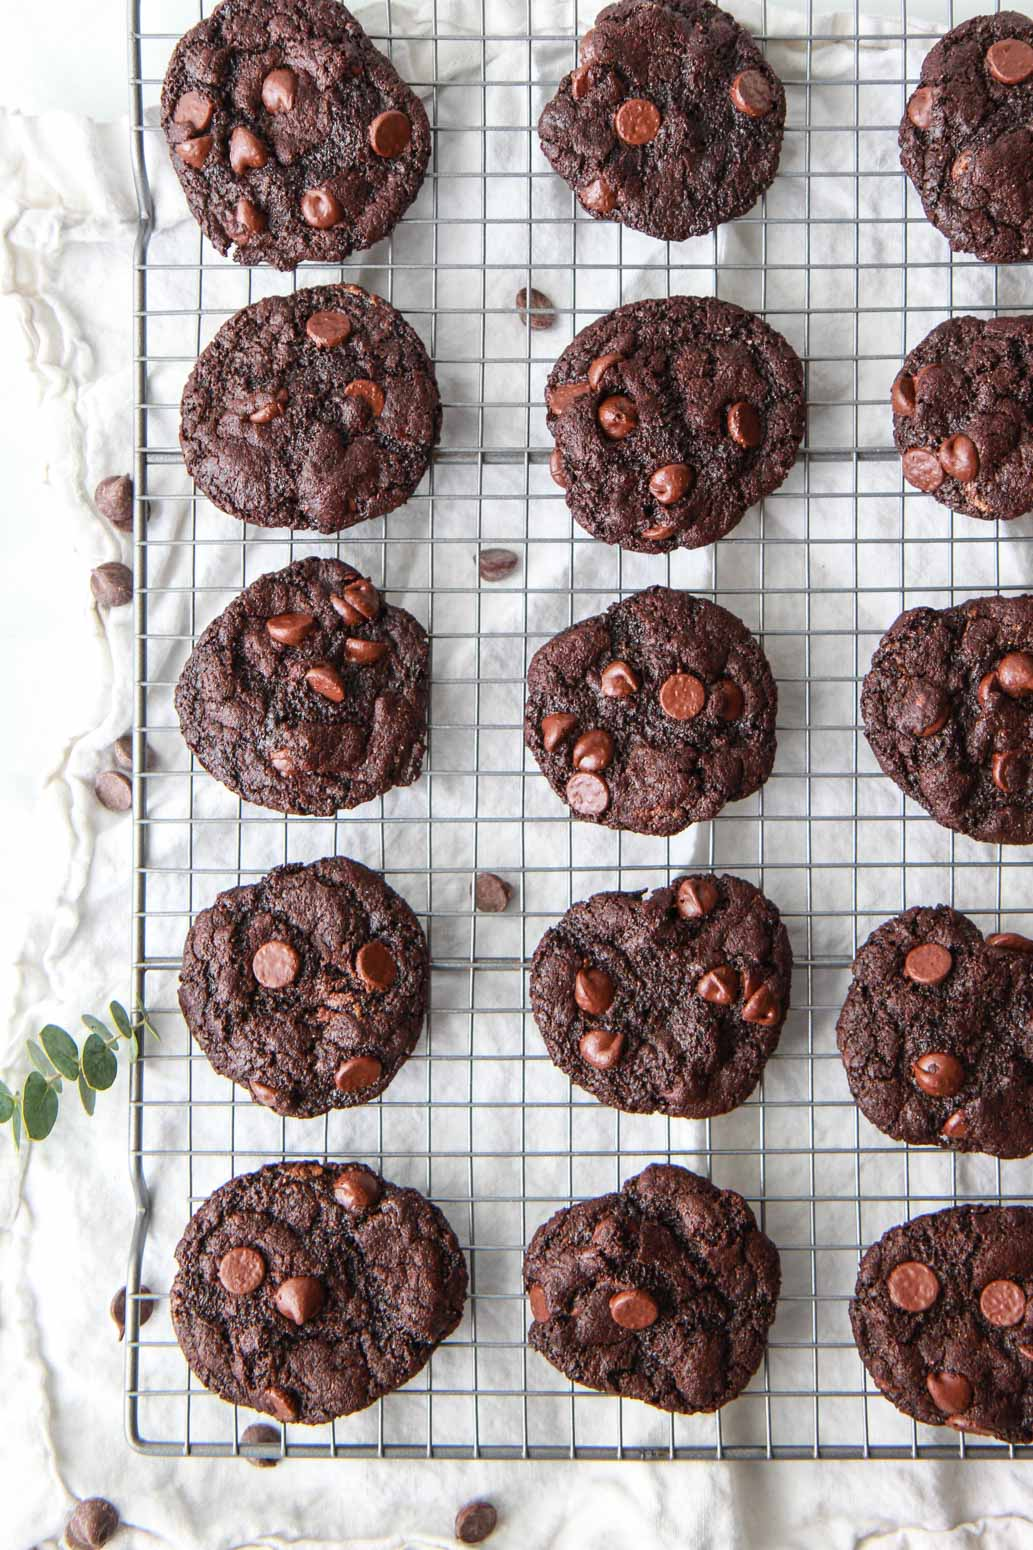 The best gluten-free, oil-free, and vegan double chocolate chip cookies that can be enjoyed in just 15 minutes and require just 7 ingredients! A one bowl vegan dessert recipe.